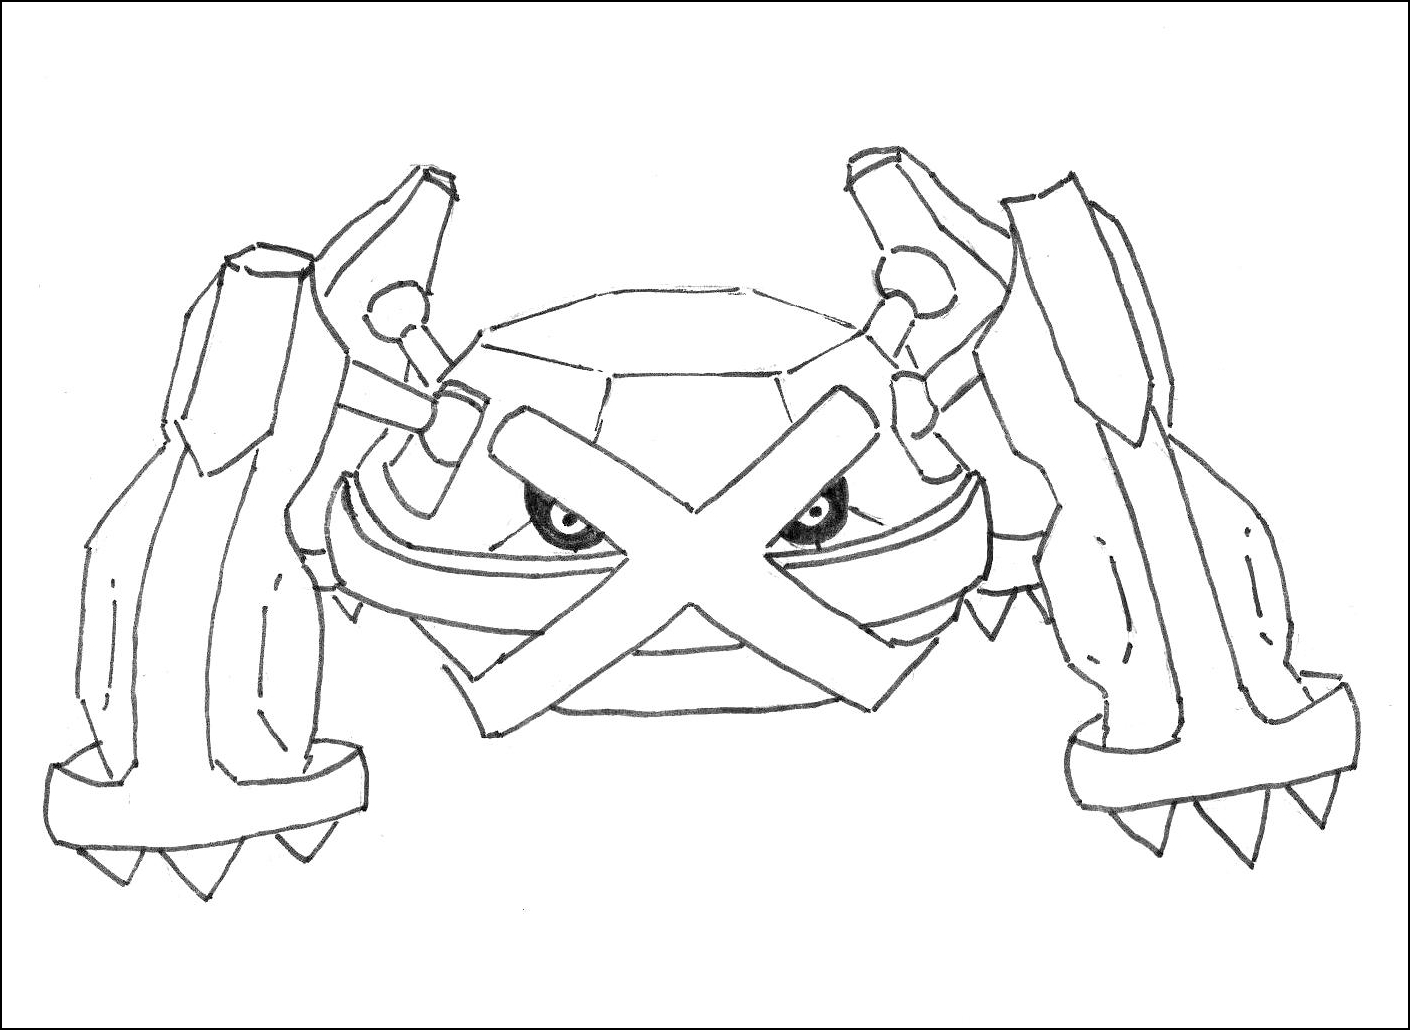 metagross pokemon coloring pages - photo#8